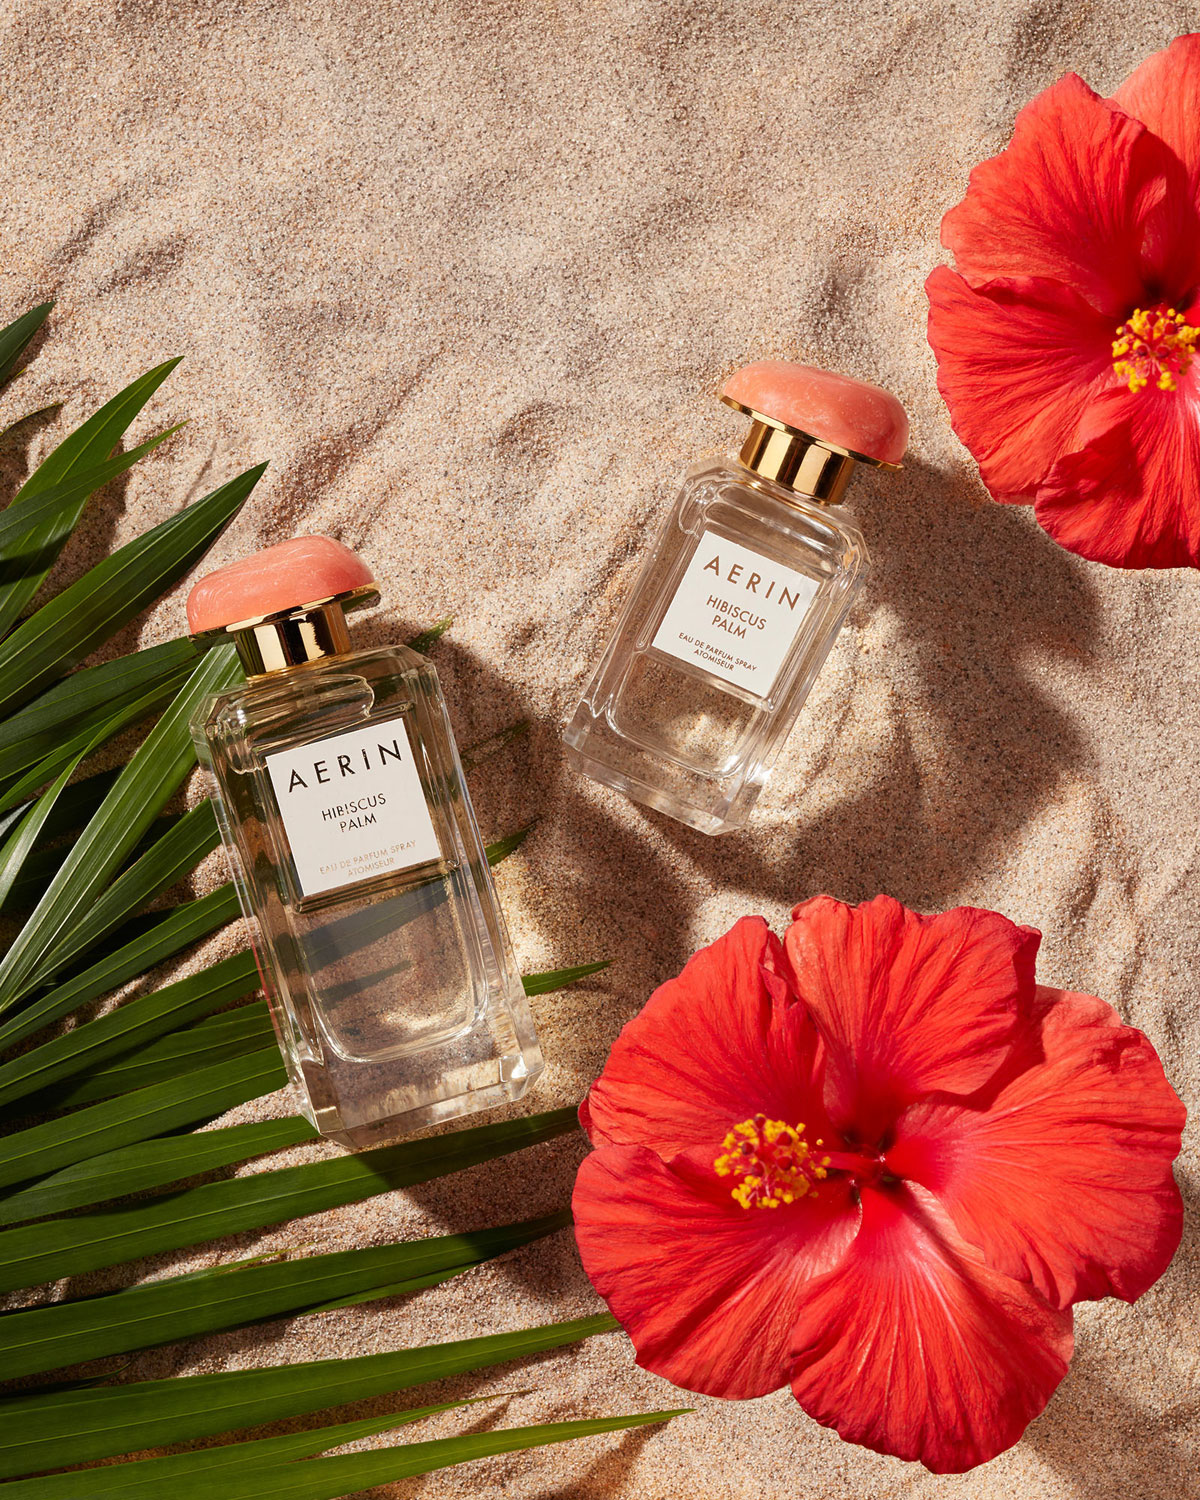 Aerin Lauder Hibiscus Palm New Fragrances